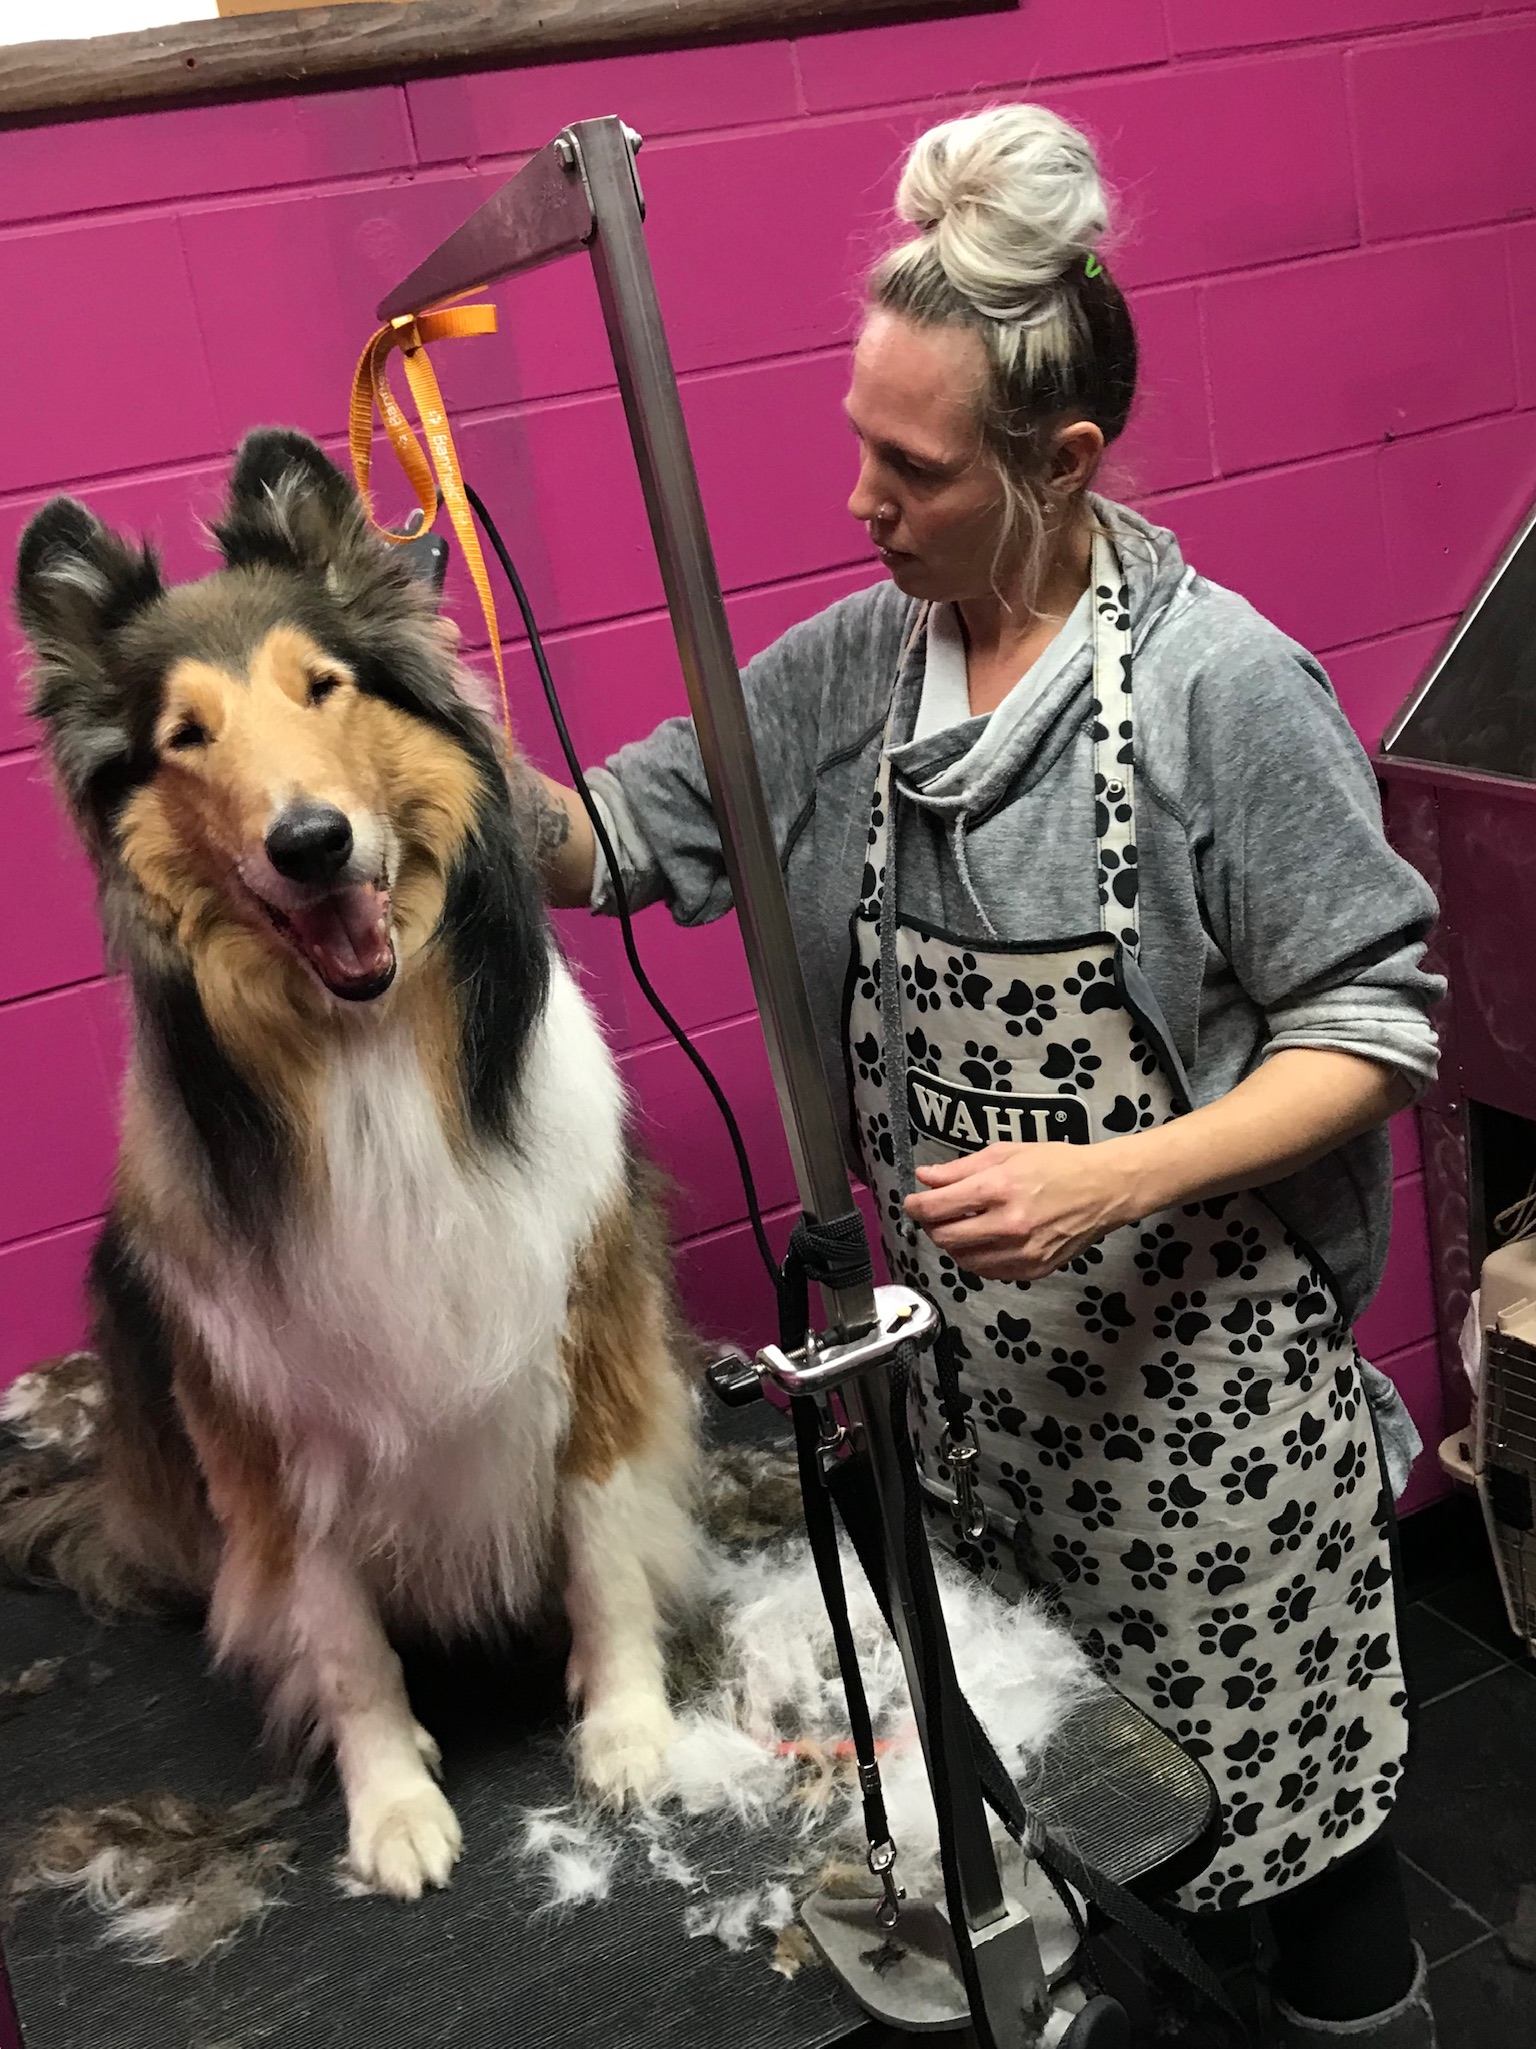 Lindsay grooming a collie